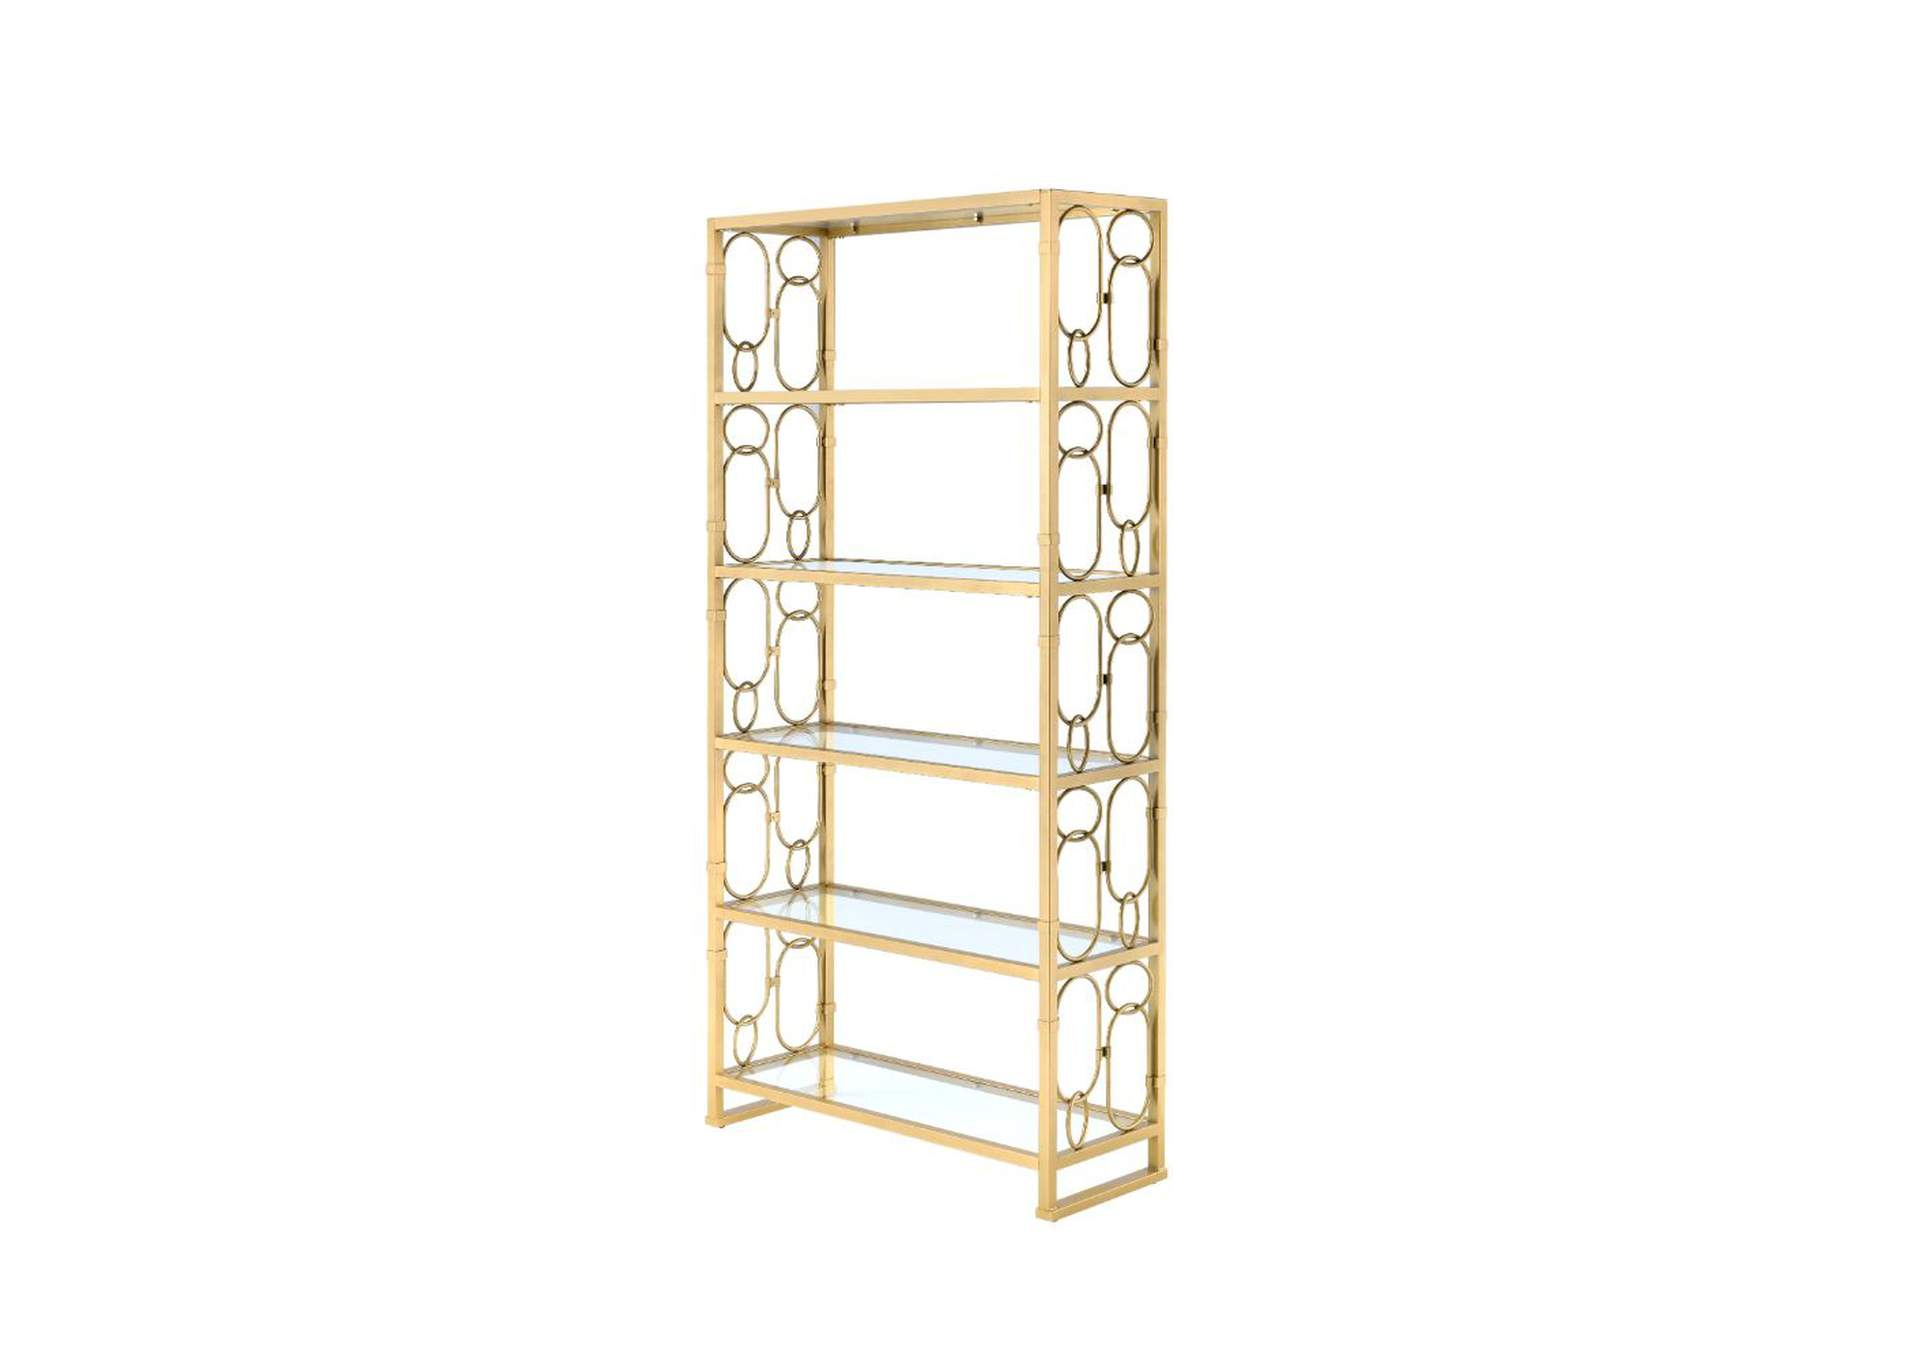 Milavera Gold & Clear Glass Bookshelf,Acme